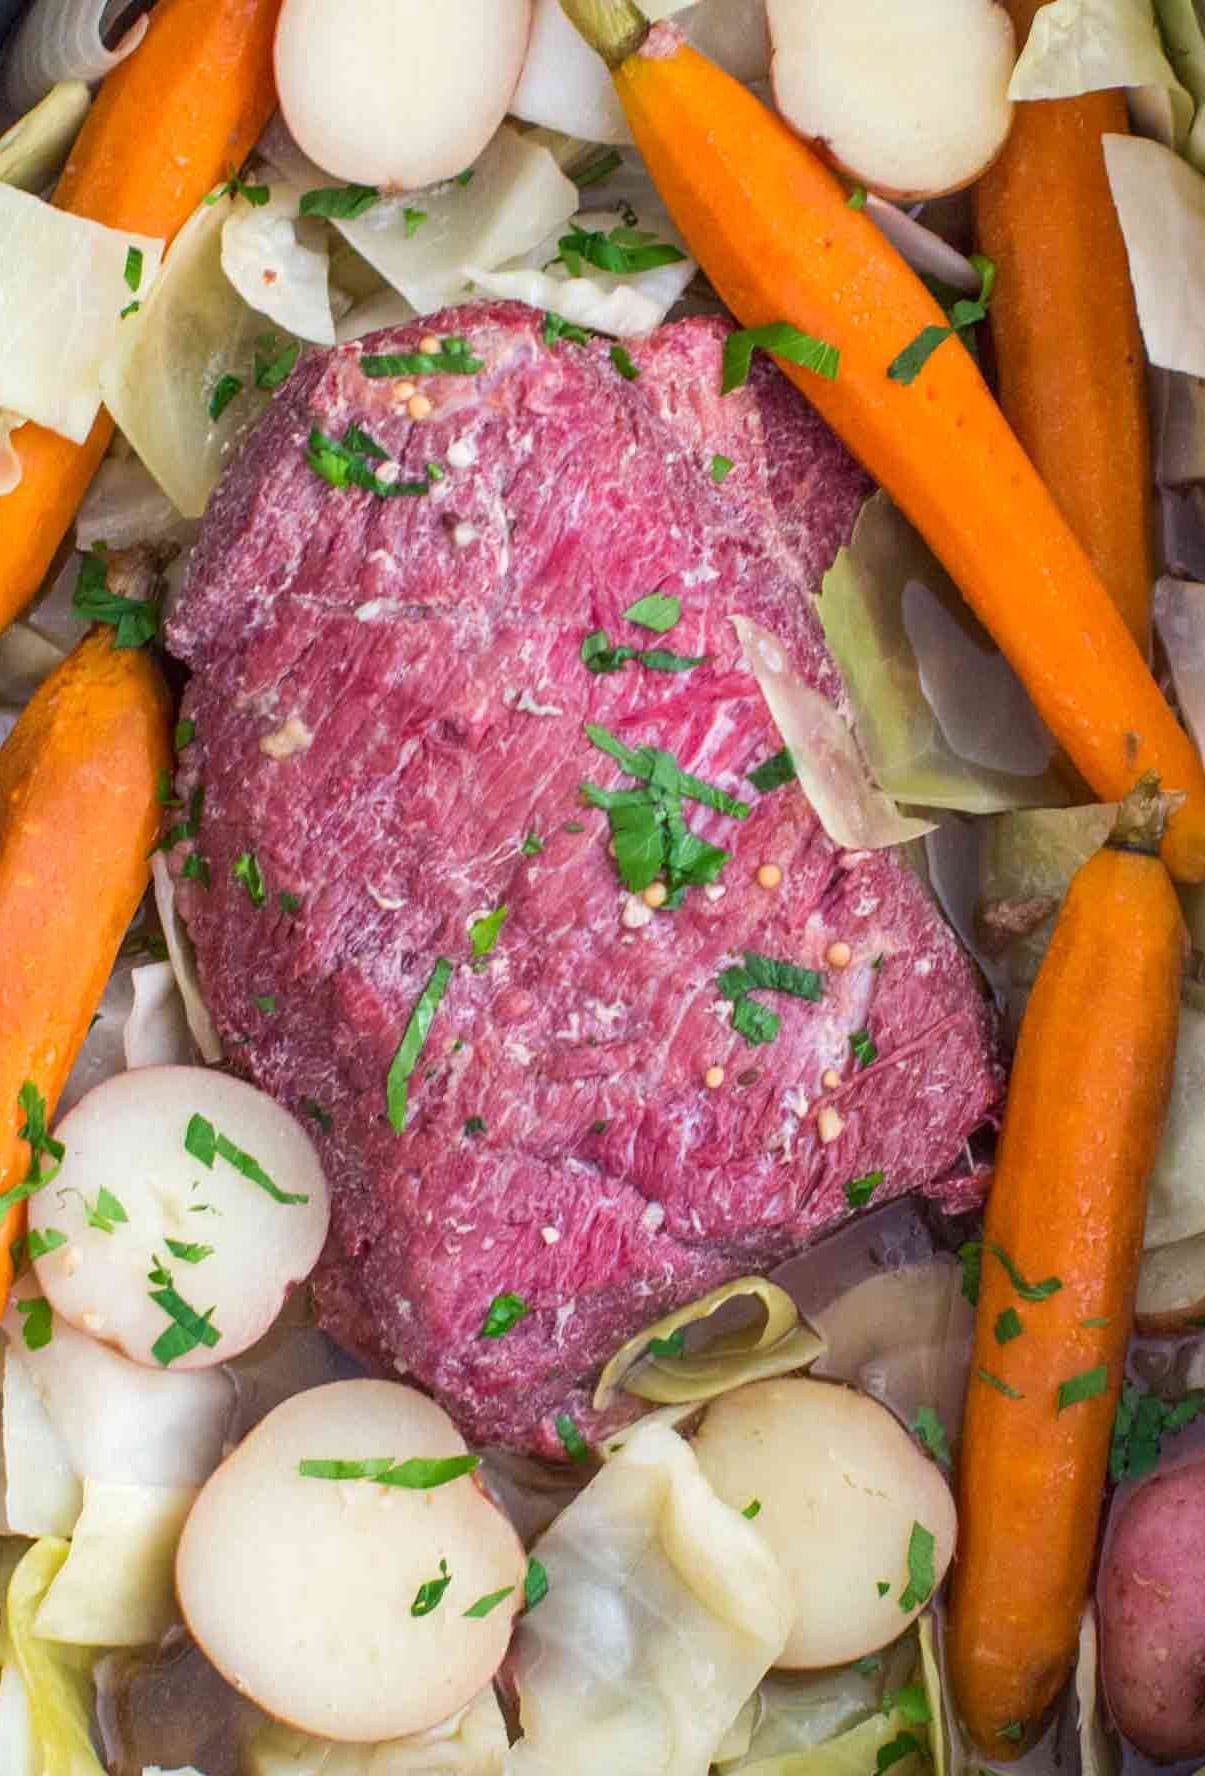 Slow Cooker Corned Beef With Cabbage Video Sweet And Savory Meals